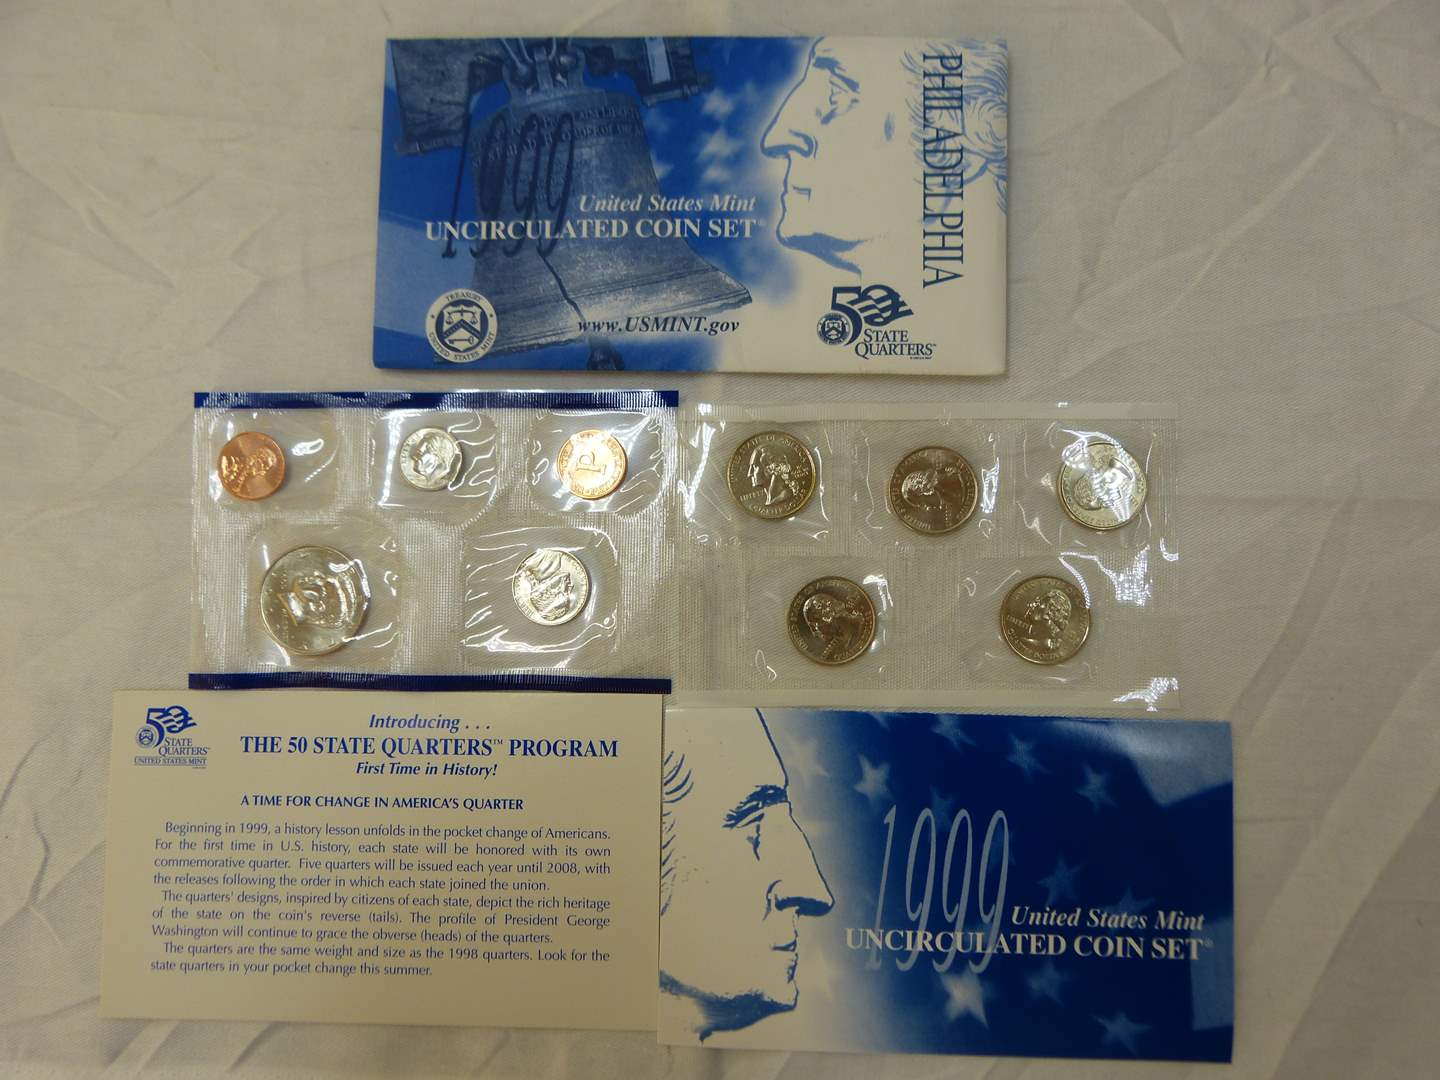 Lot # 103  1999 United States Mint uncirculated Coin Set w/state quarters  (main image)